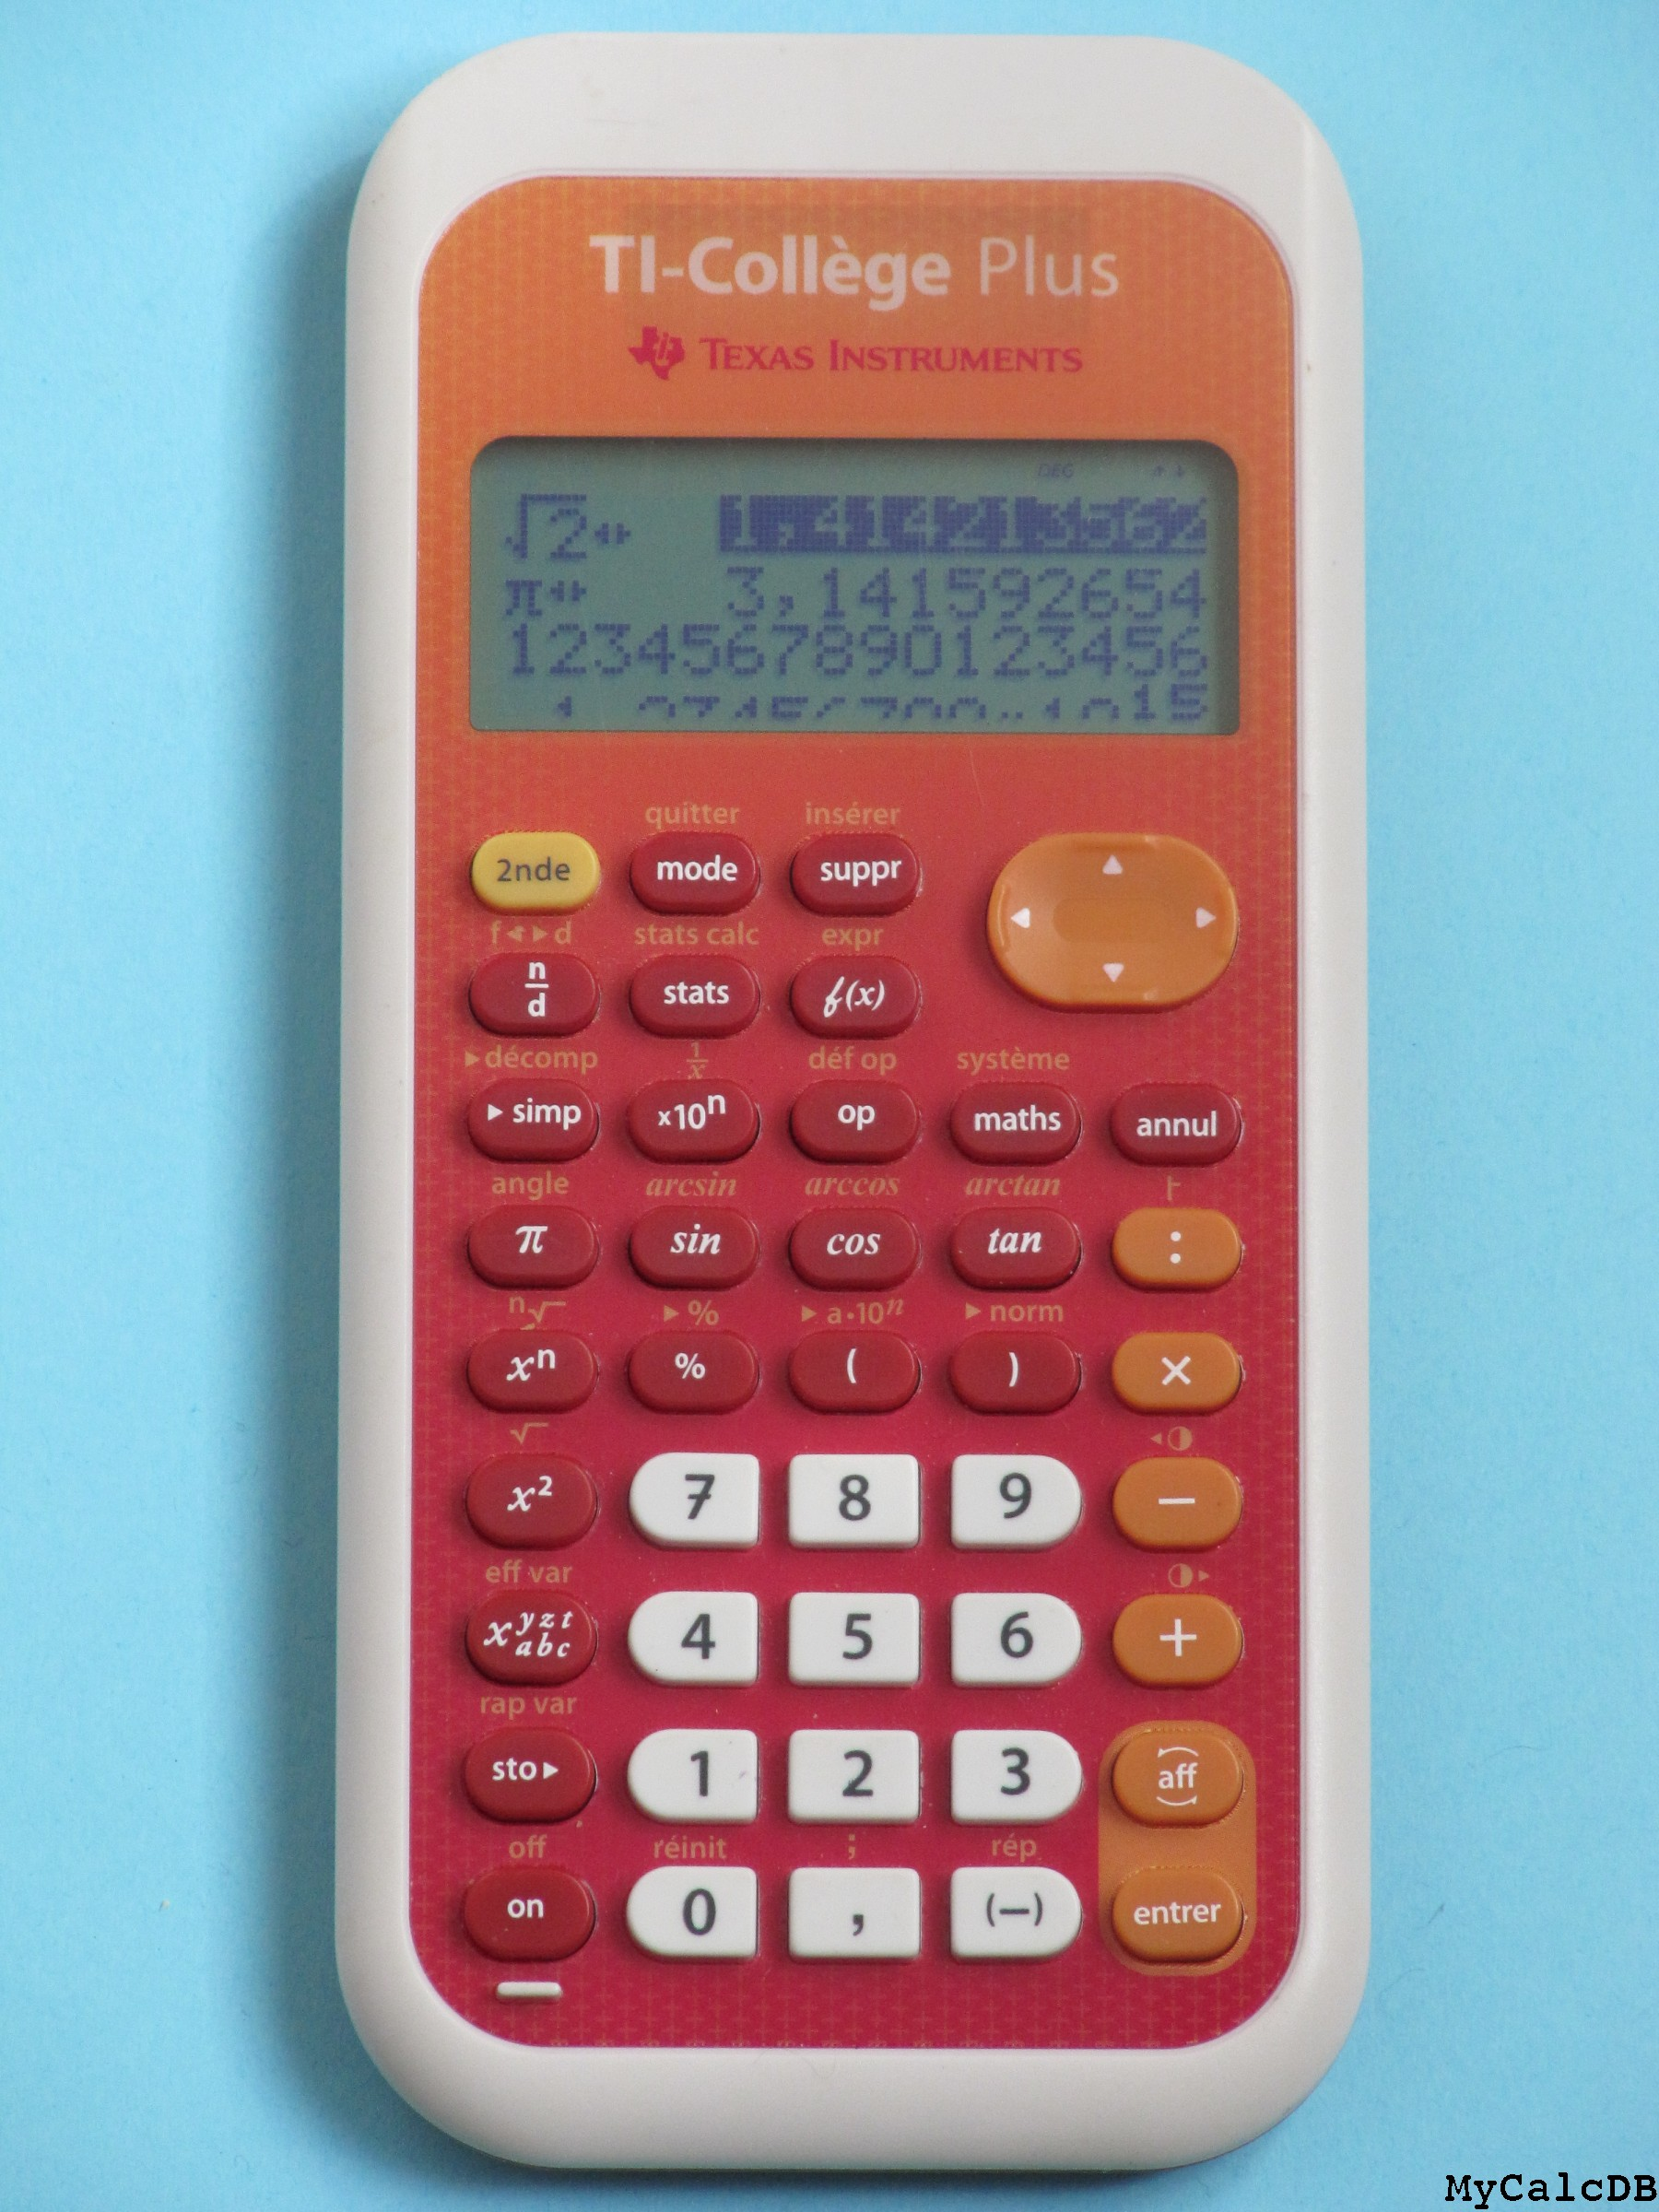 Texas Instruments TI-Coll�ge Plus